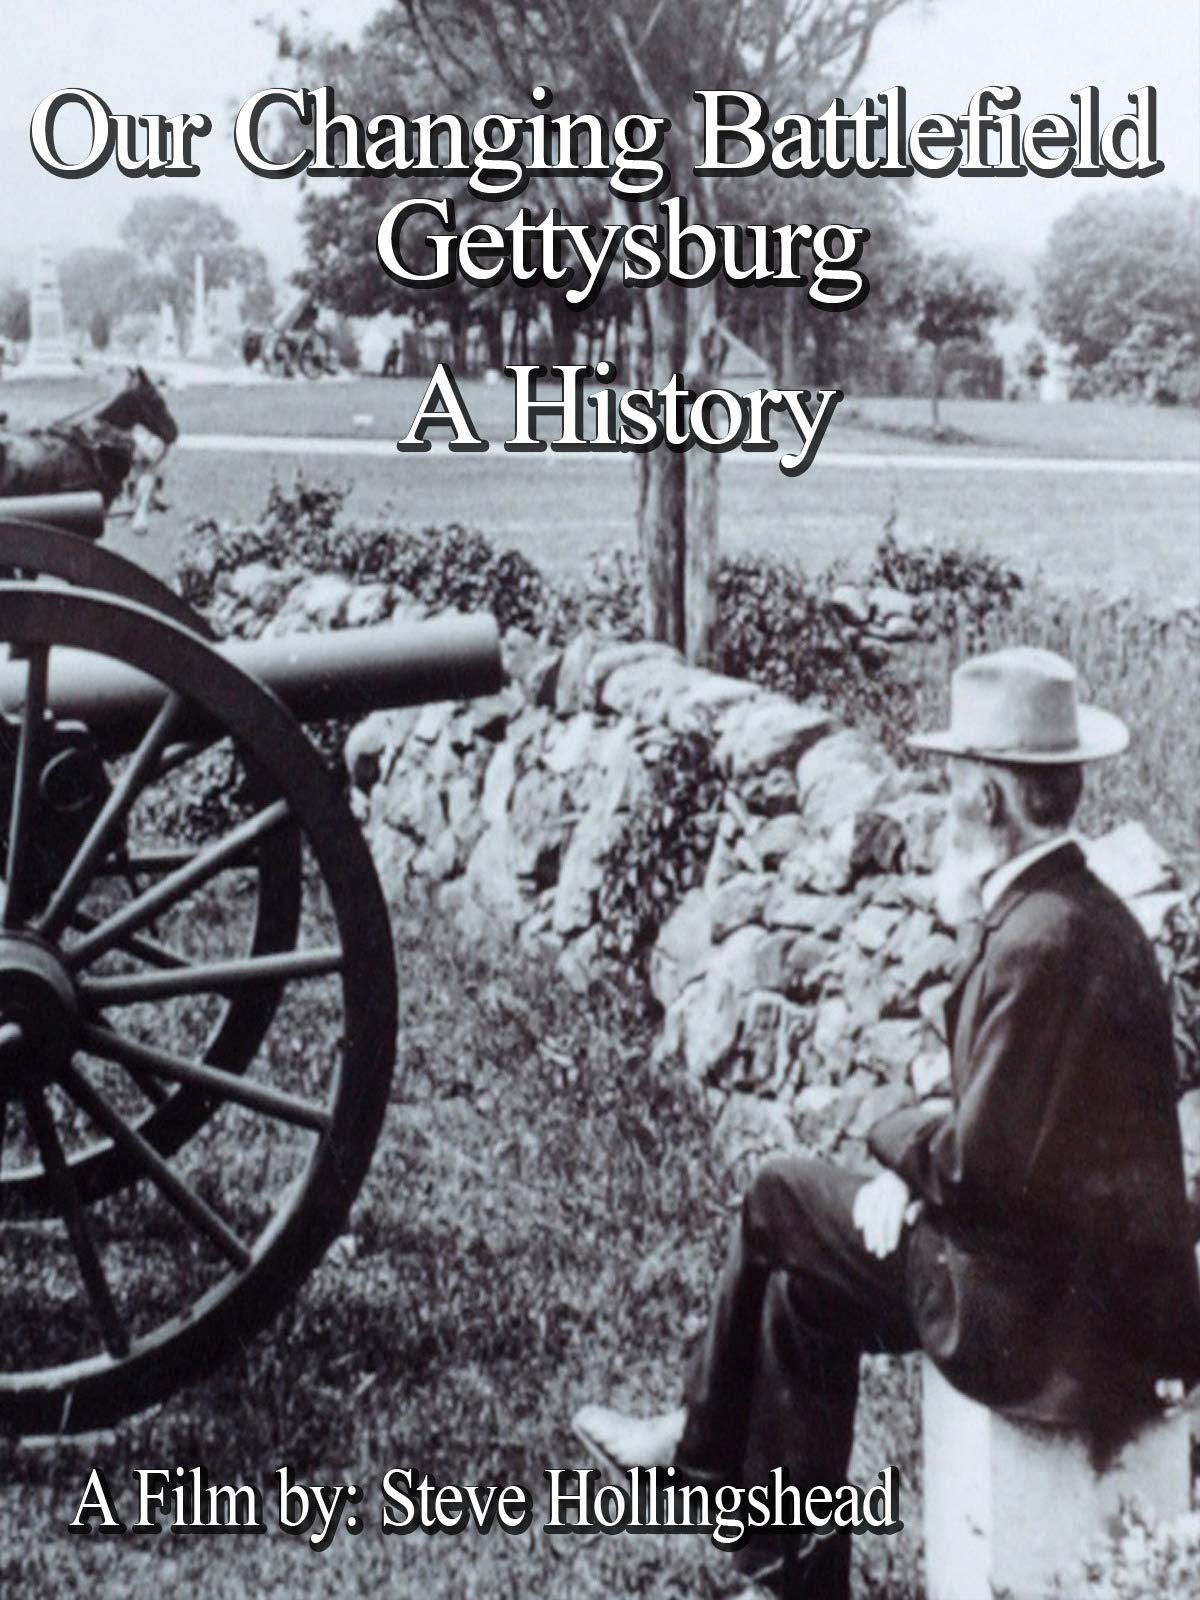 Our Changing Battlefield/Gettysburg-A History